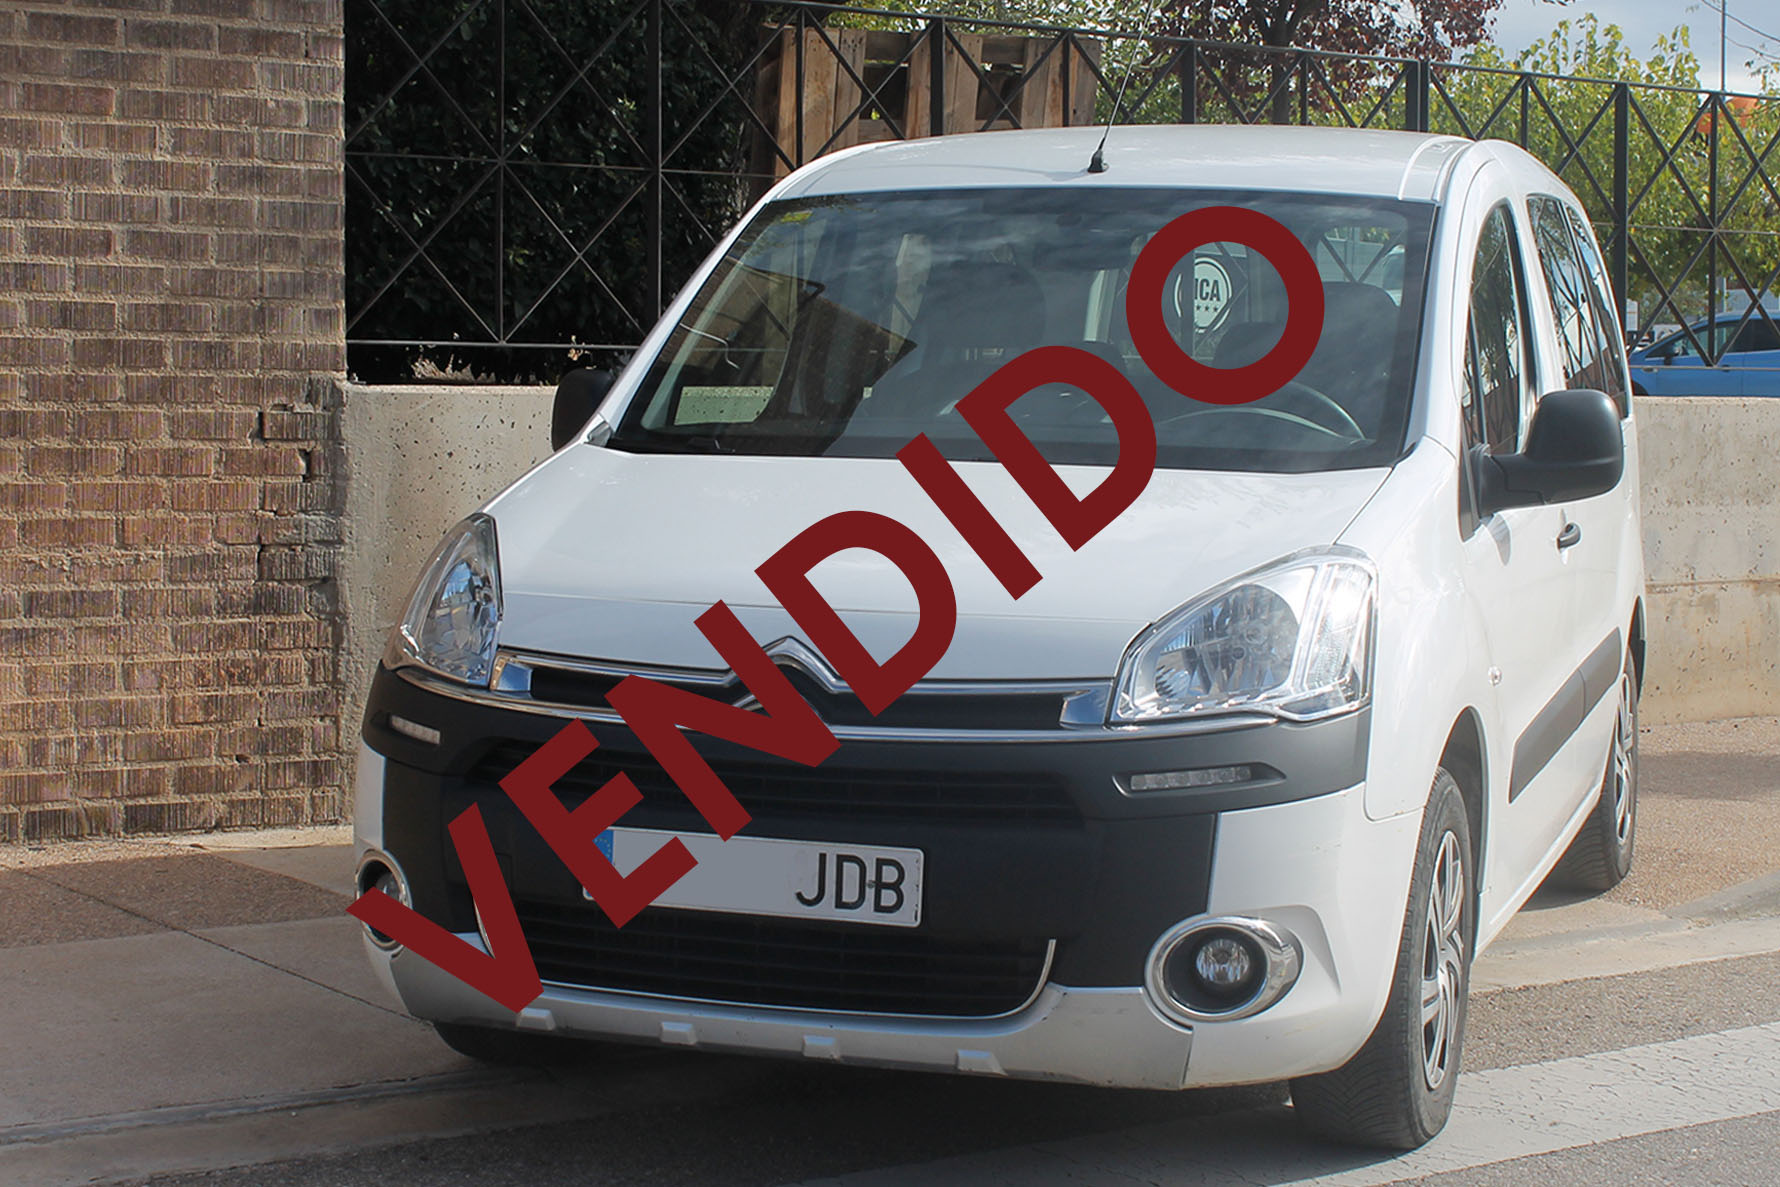 CITROEN BERLINGO 1.6HDI 75 Tonic